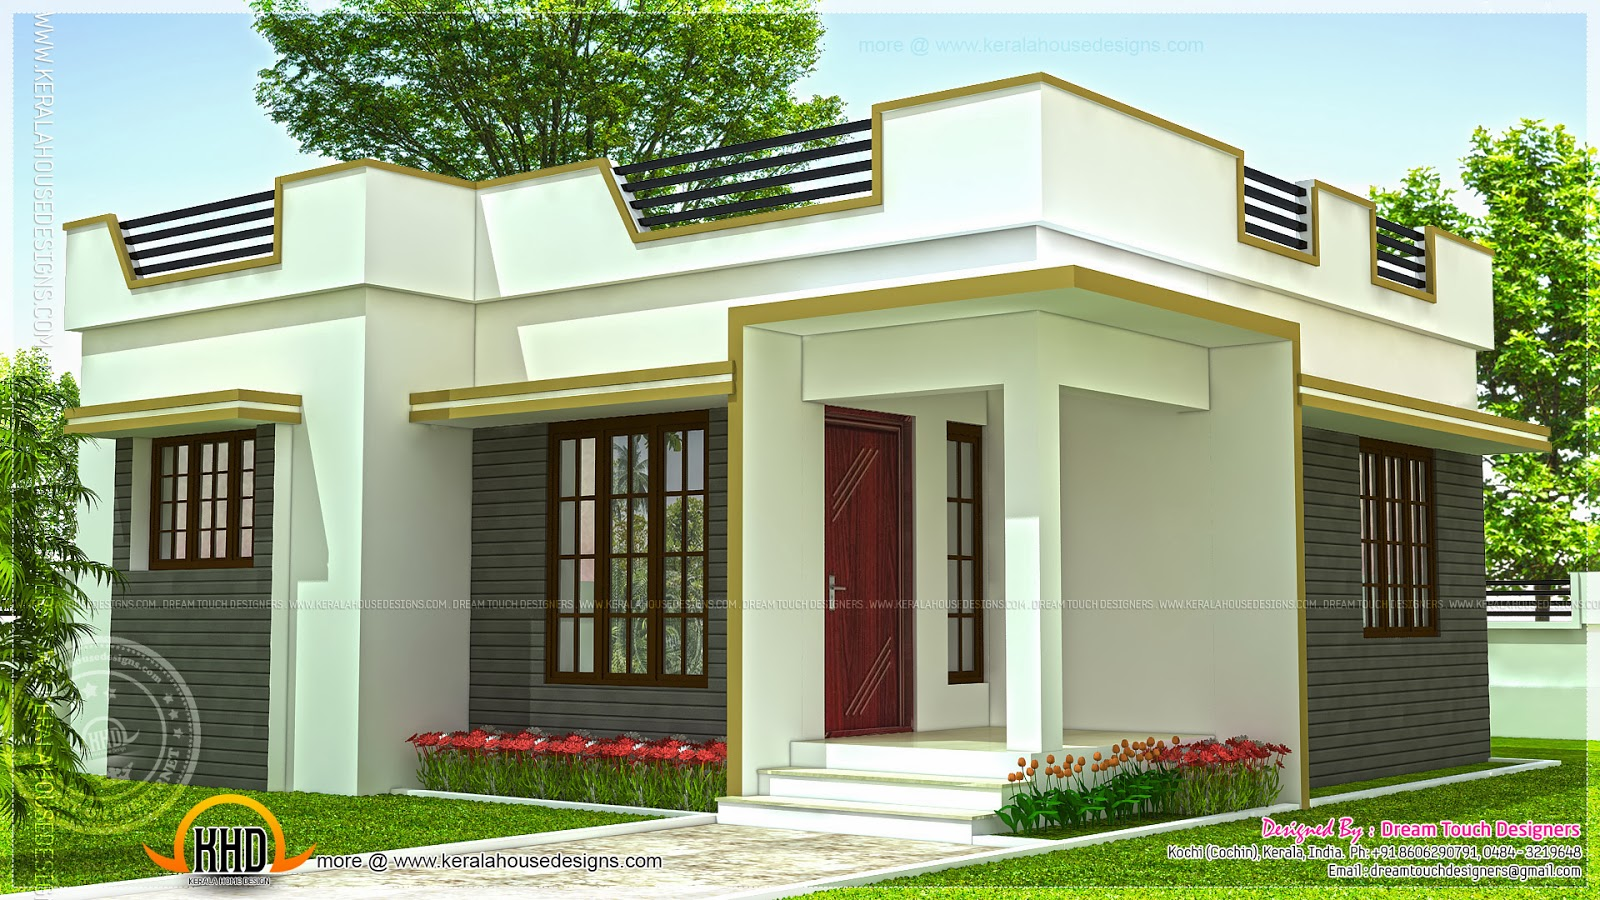 35 small and simple but beautiful house with roof deck for New home models and plans